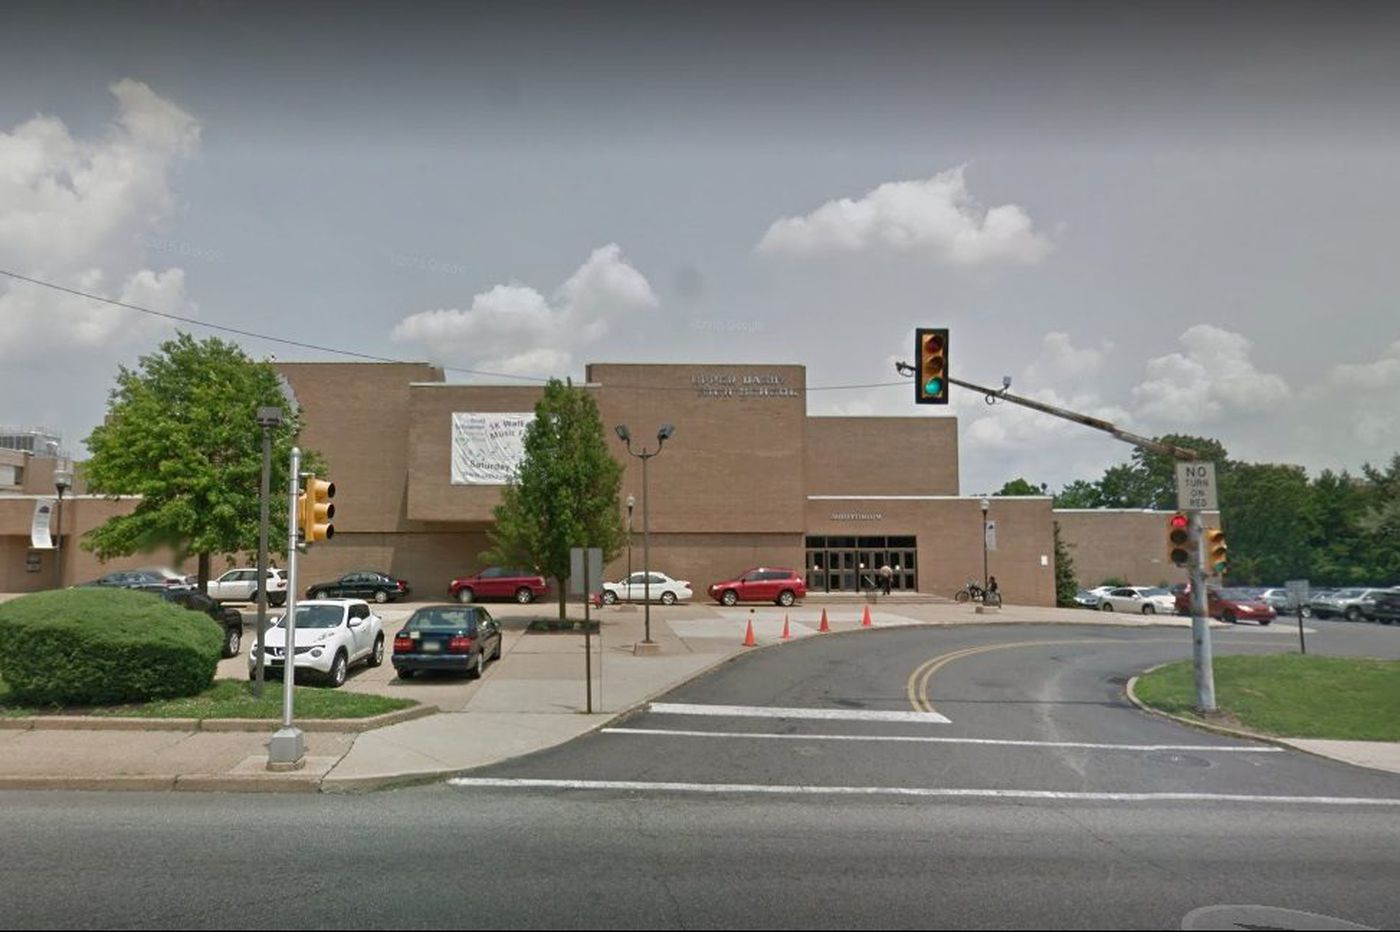 Upper Darby High School cancels classes on Friday because of reported threat